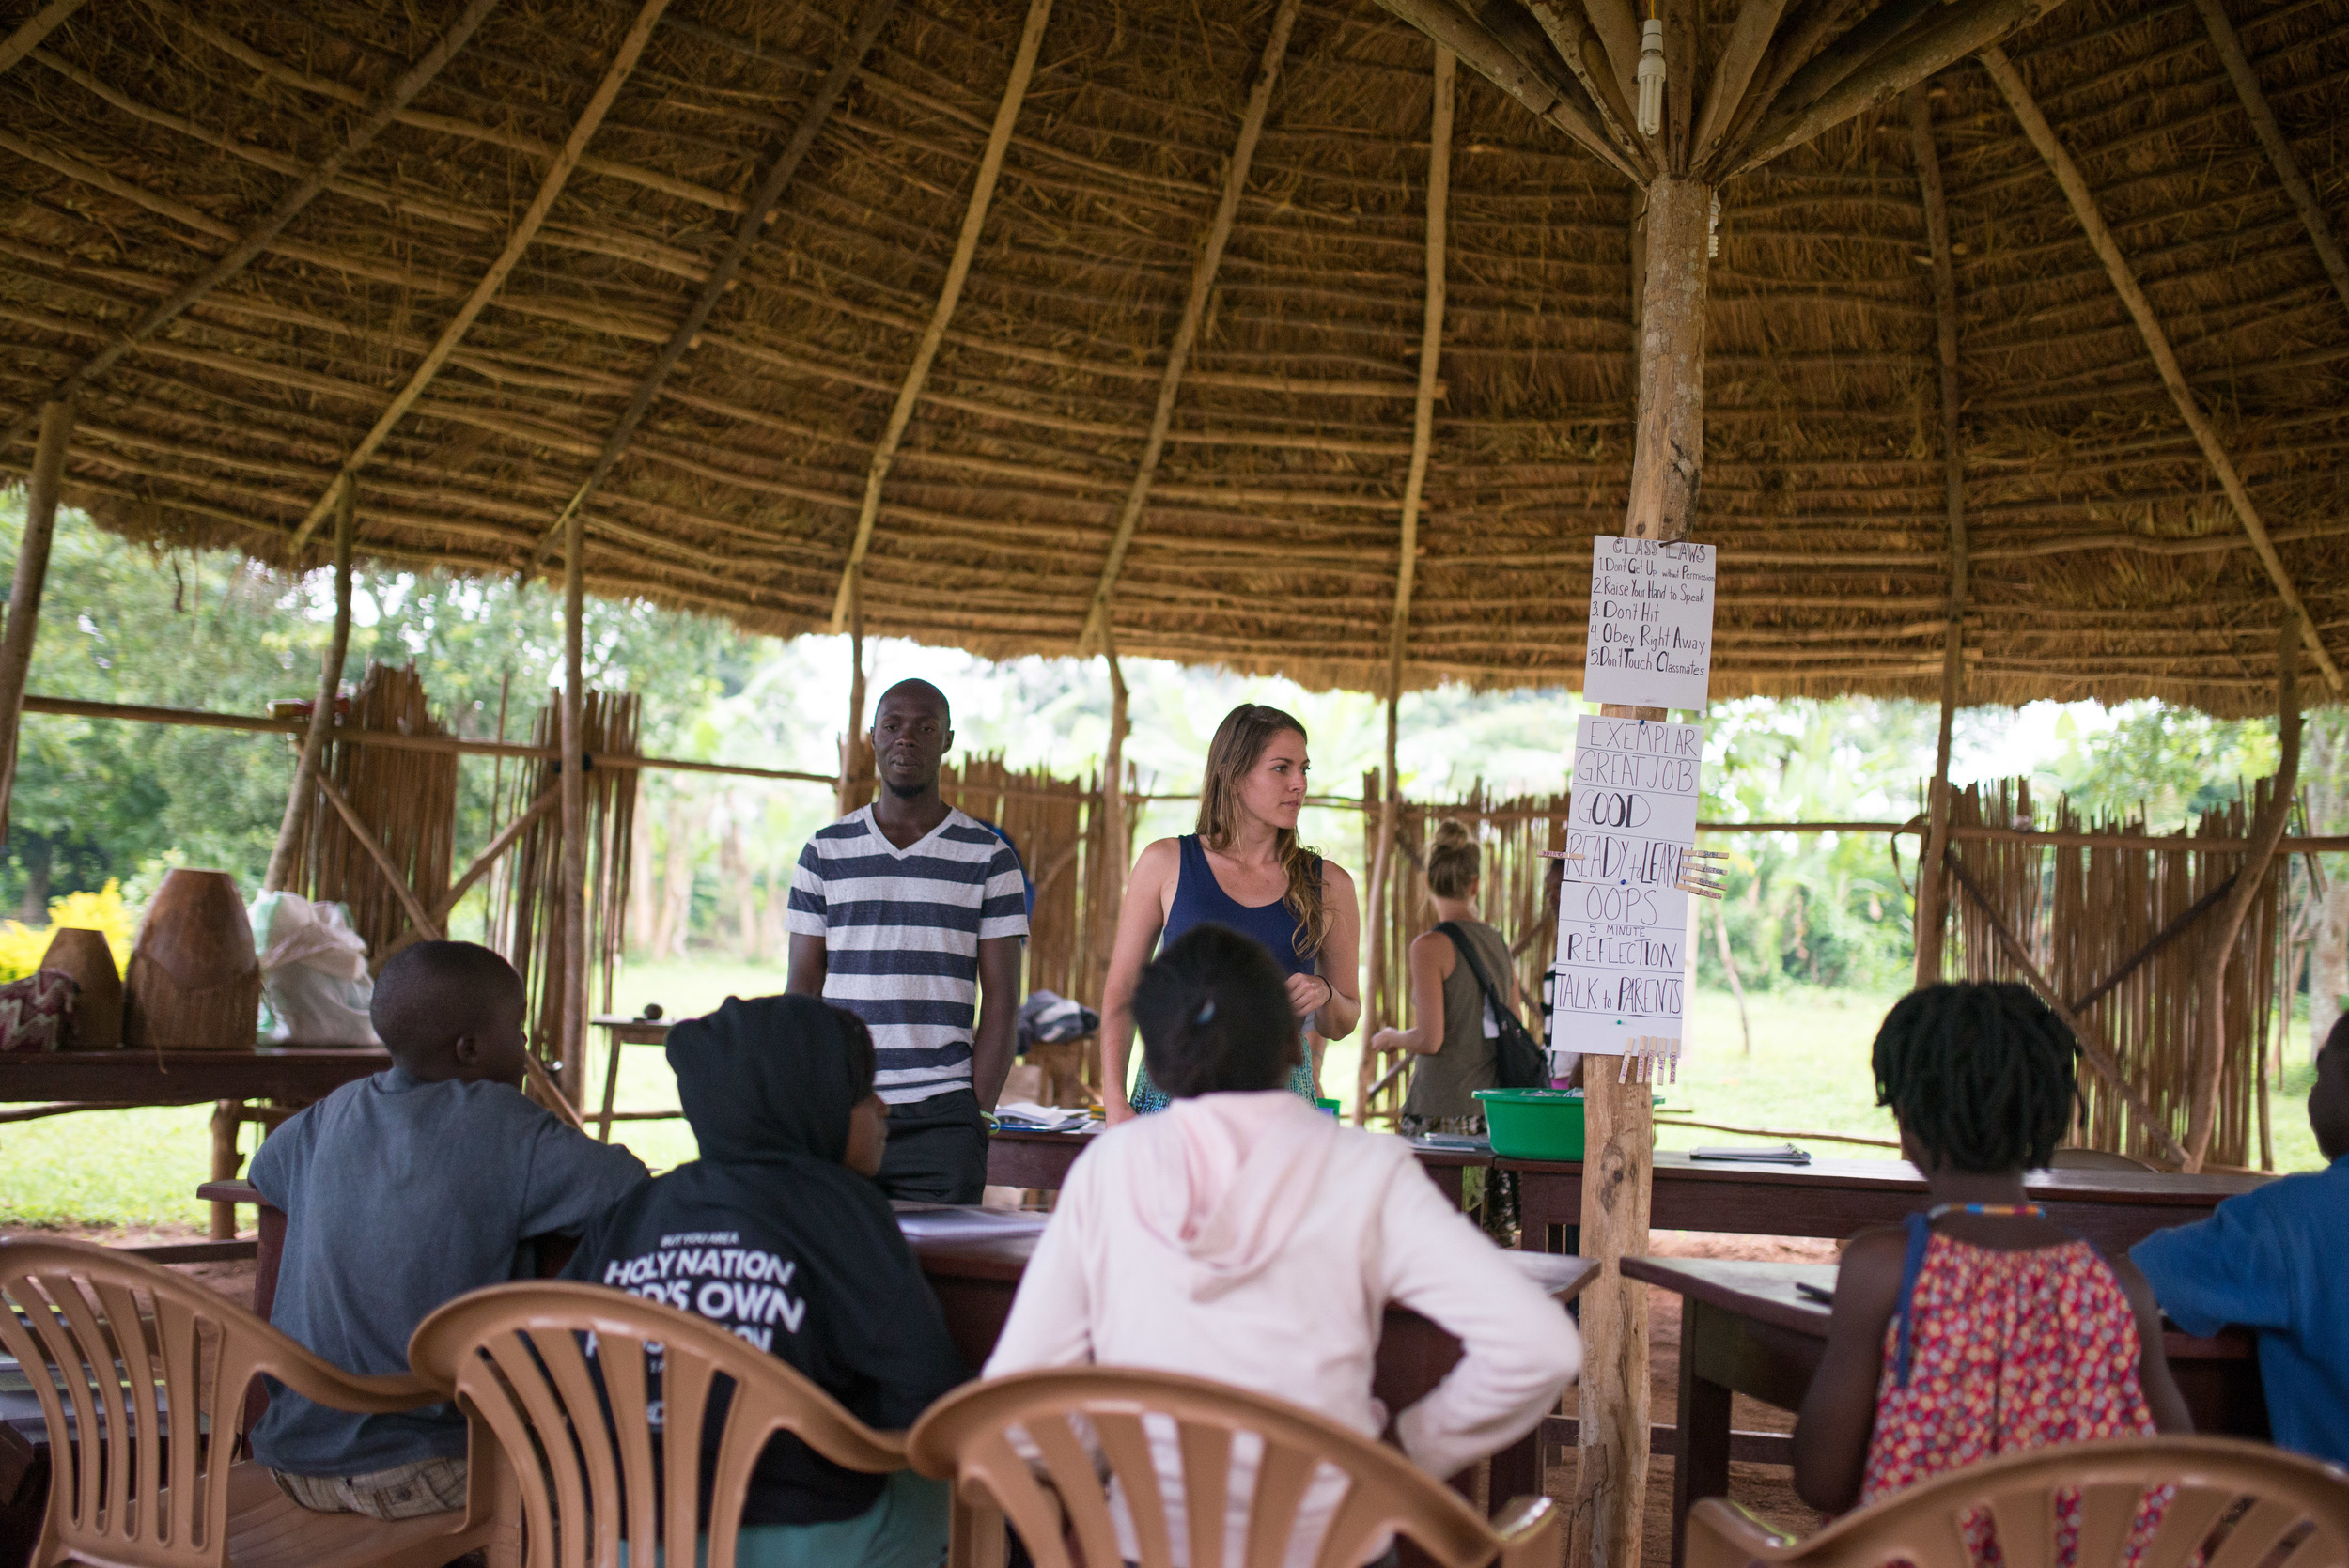 The gazebo also functions as a classroom, here for children, all the way to adult bible classes, community bible studies, and more.